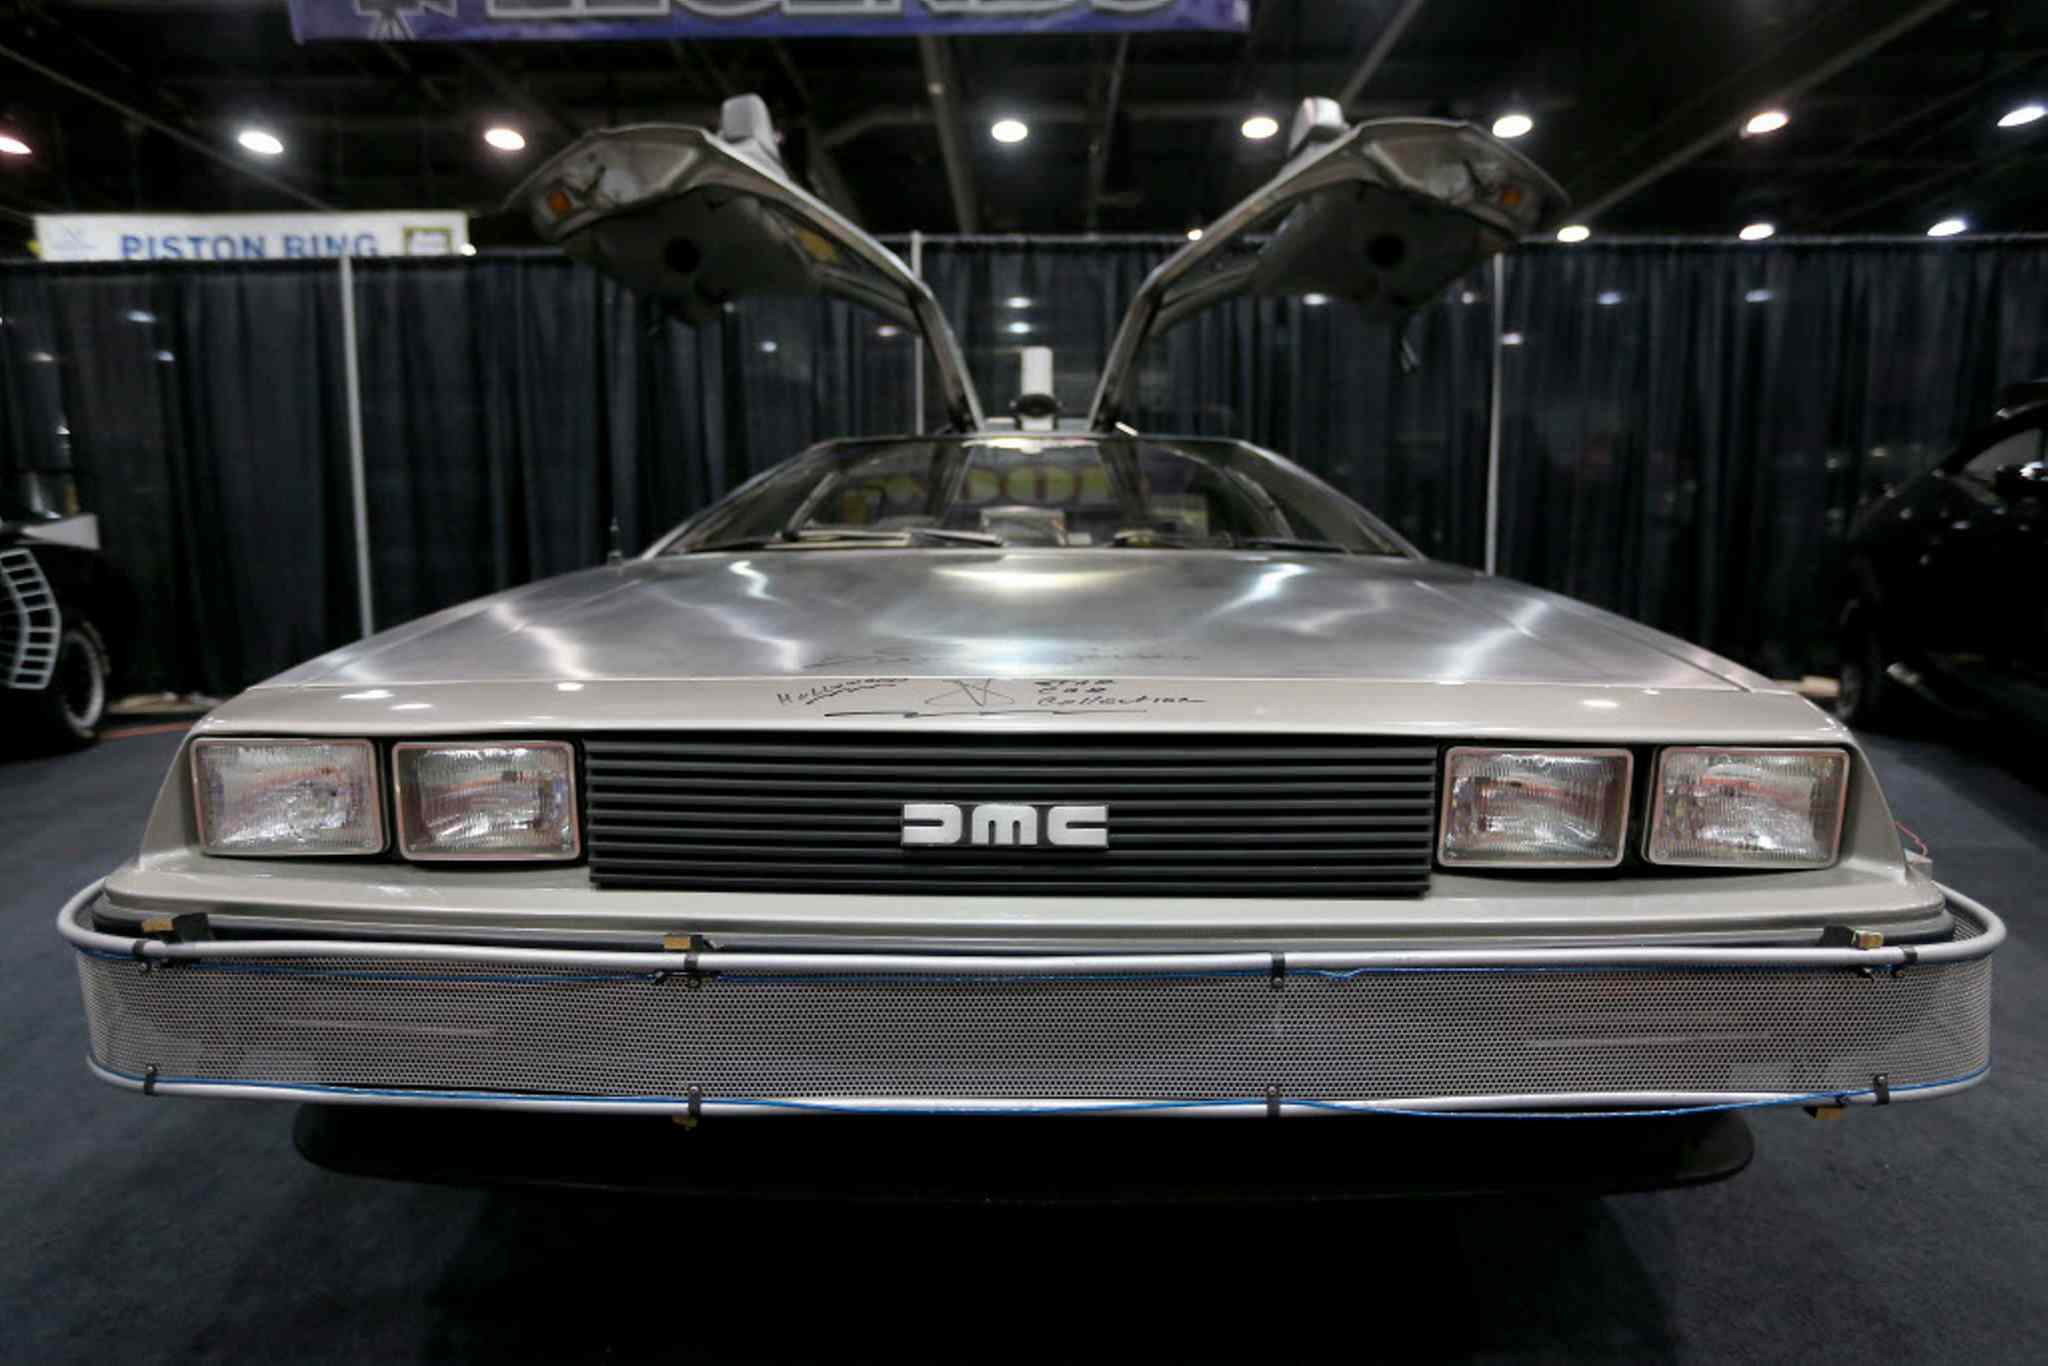 The Delorean from Back to the Future at the World of Wheels Car show at the Convention Centre, Saturday, March 15, 2014.